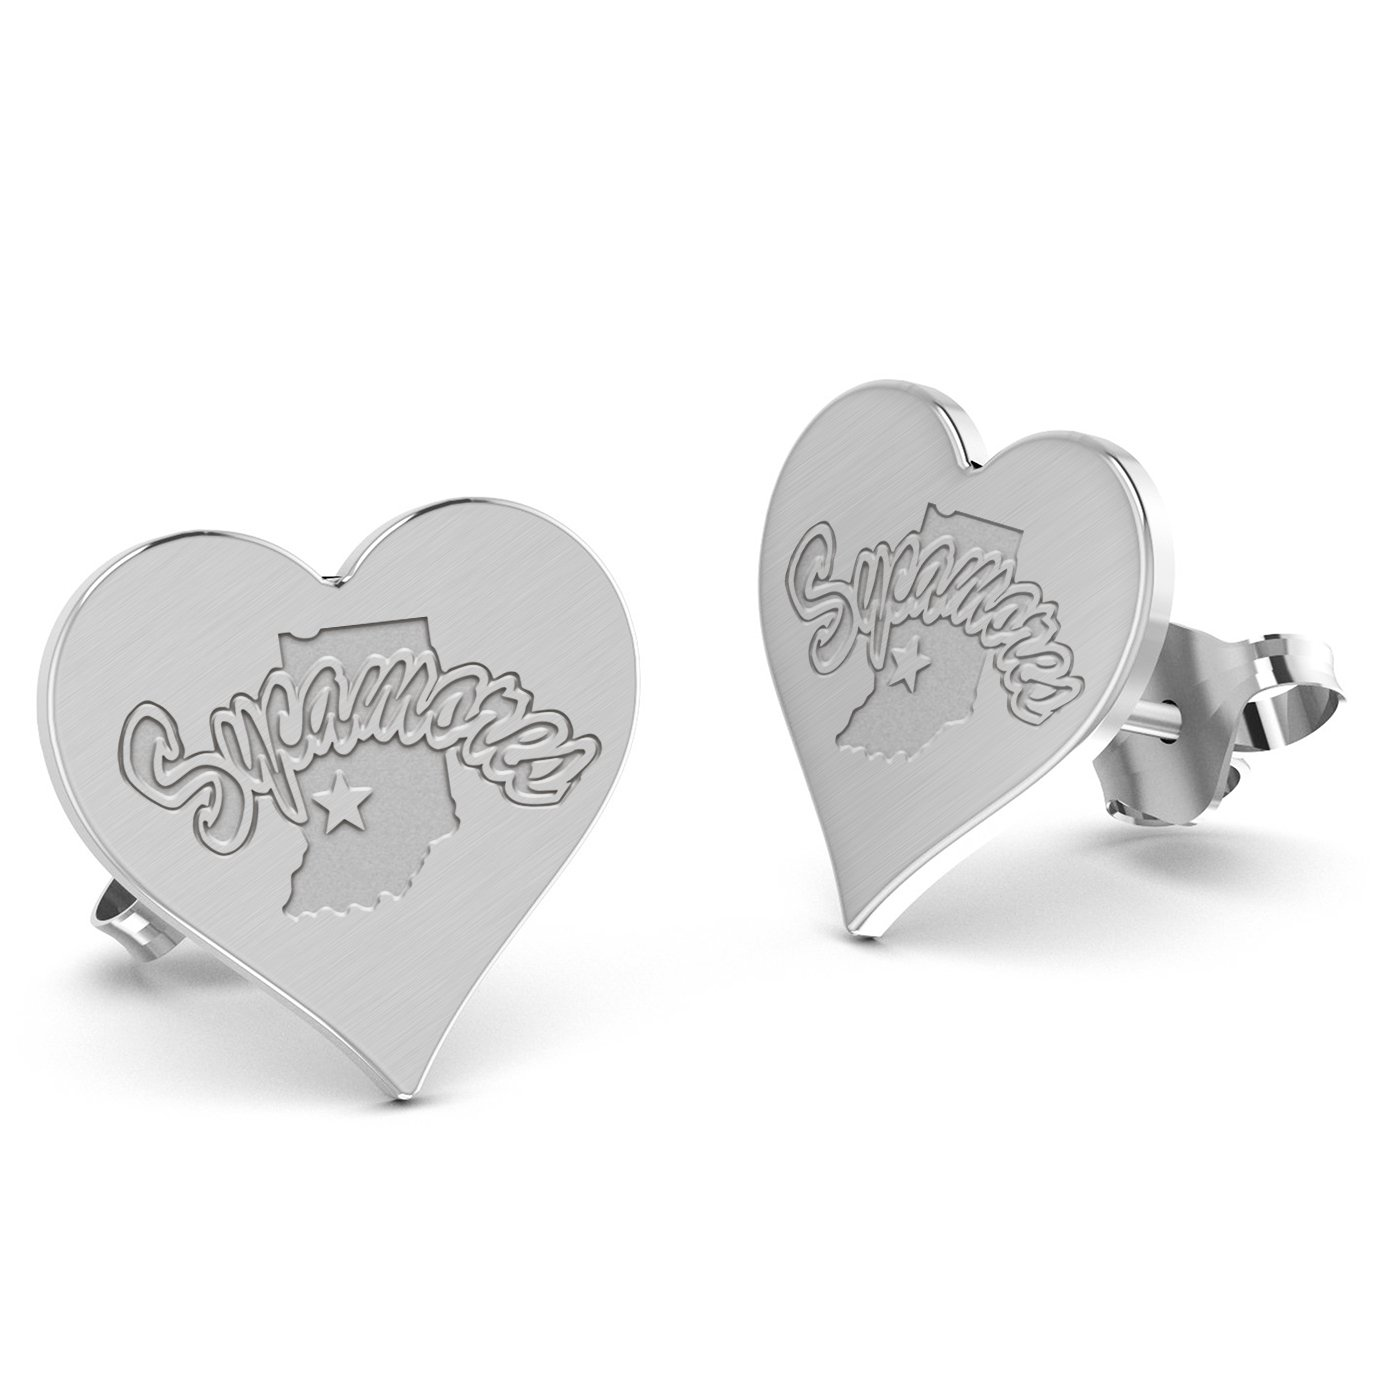 Indiana State University Sycamores Heart Stud Earring See Image on Model for Size Reference